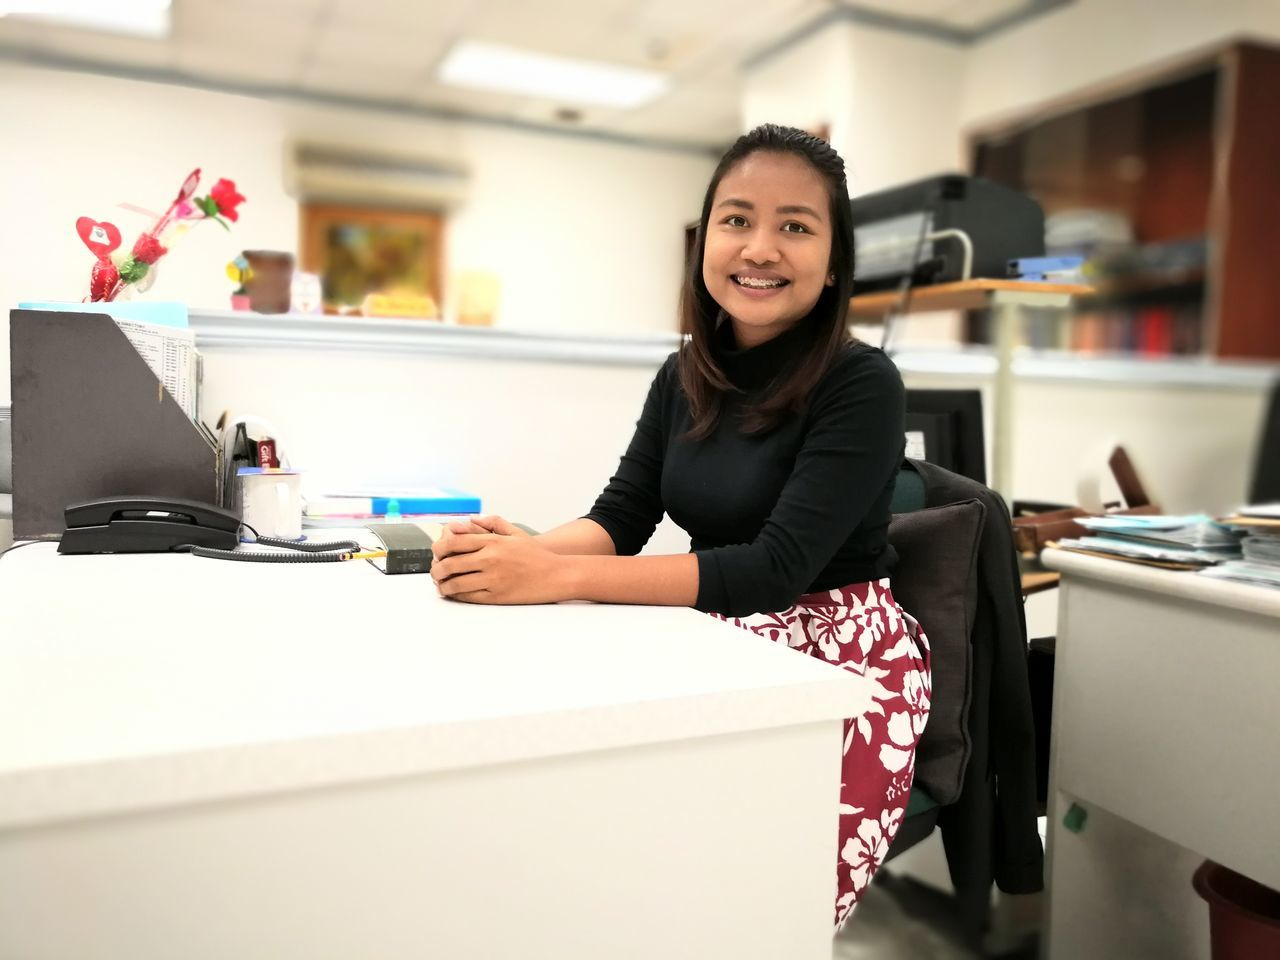 Office Worker Woman Of EyeEm Self Portrait Woman At Work Smart Asian Woman Lawyer Photography P10 Plus Photography Woman Power Only Women One Woman Only Lovely Asian Asian Beauty Filipina Portrait Pinaybeauty Beautiful Woman Asian  Asian Woman Photographers Day Photography EyeEm Huaweiphotography Huawei Huawei P10 Plus